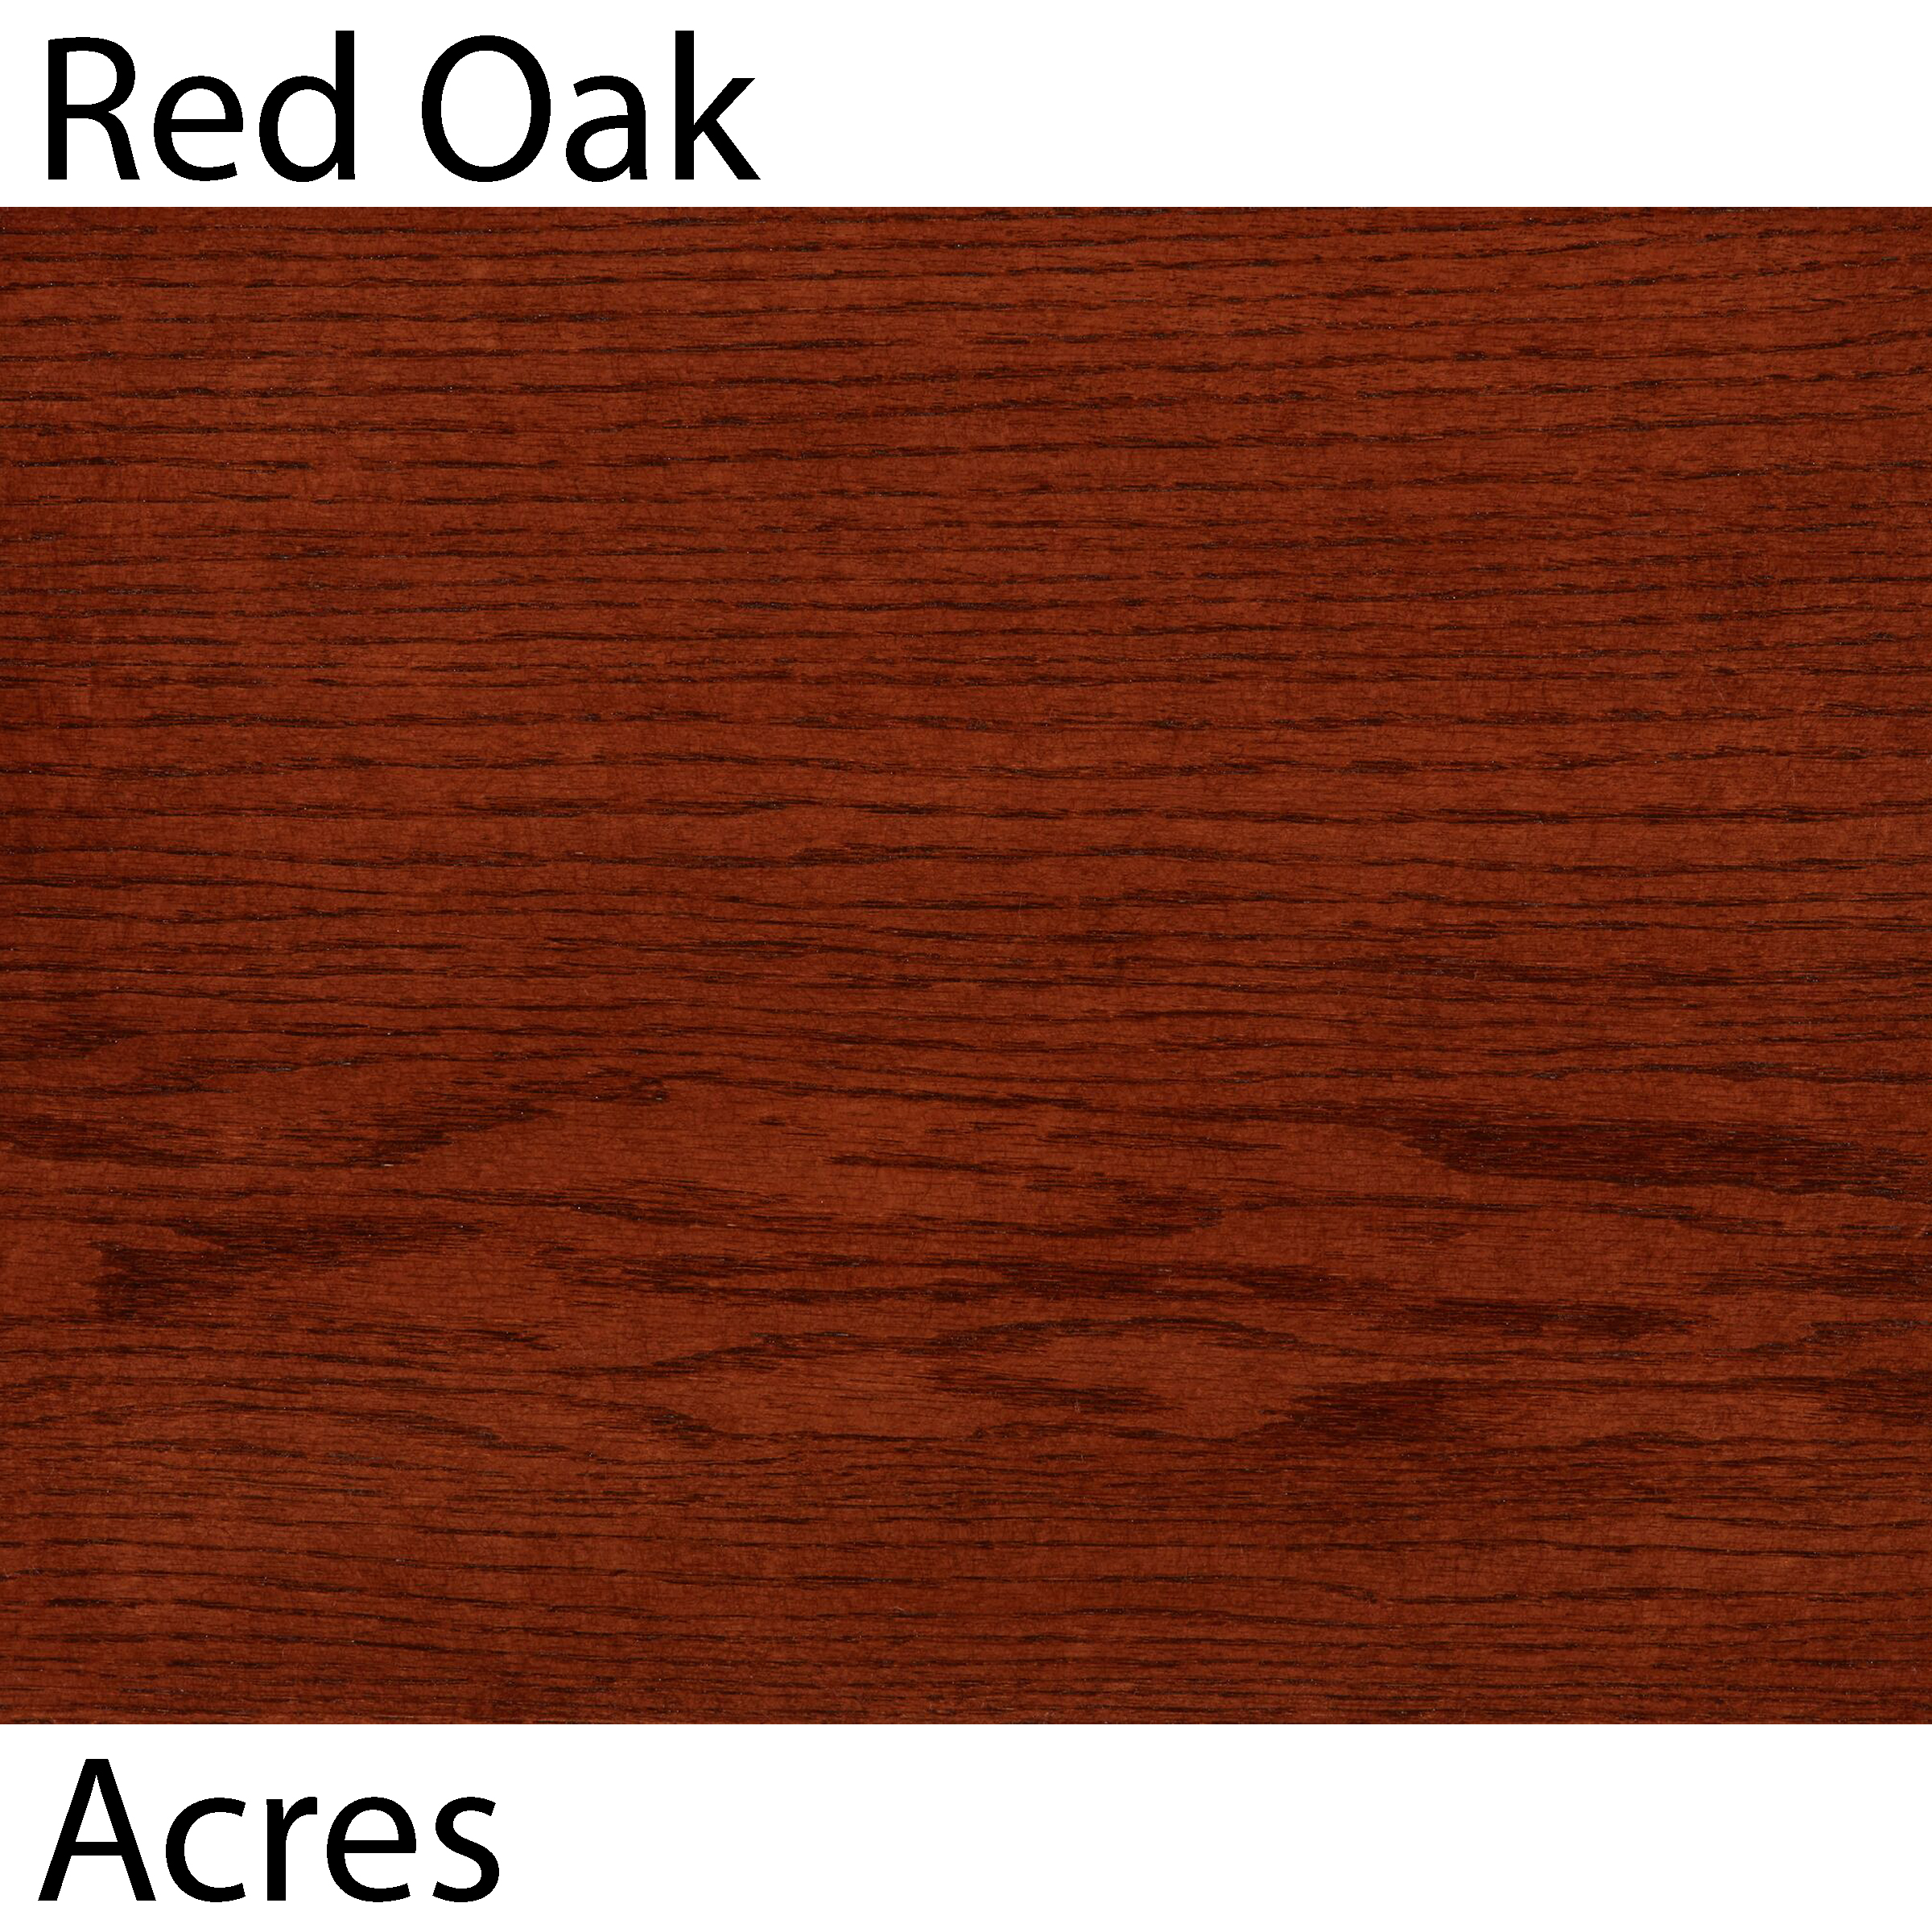 Red Oak Wood